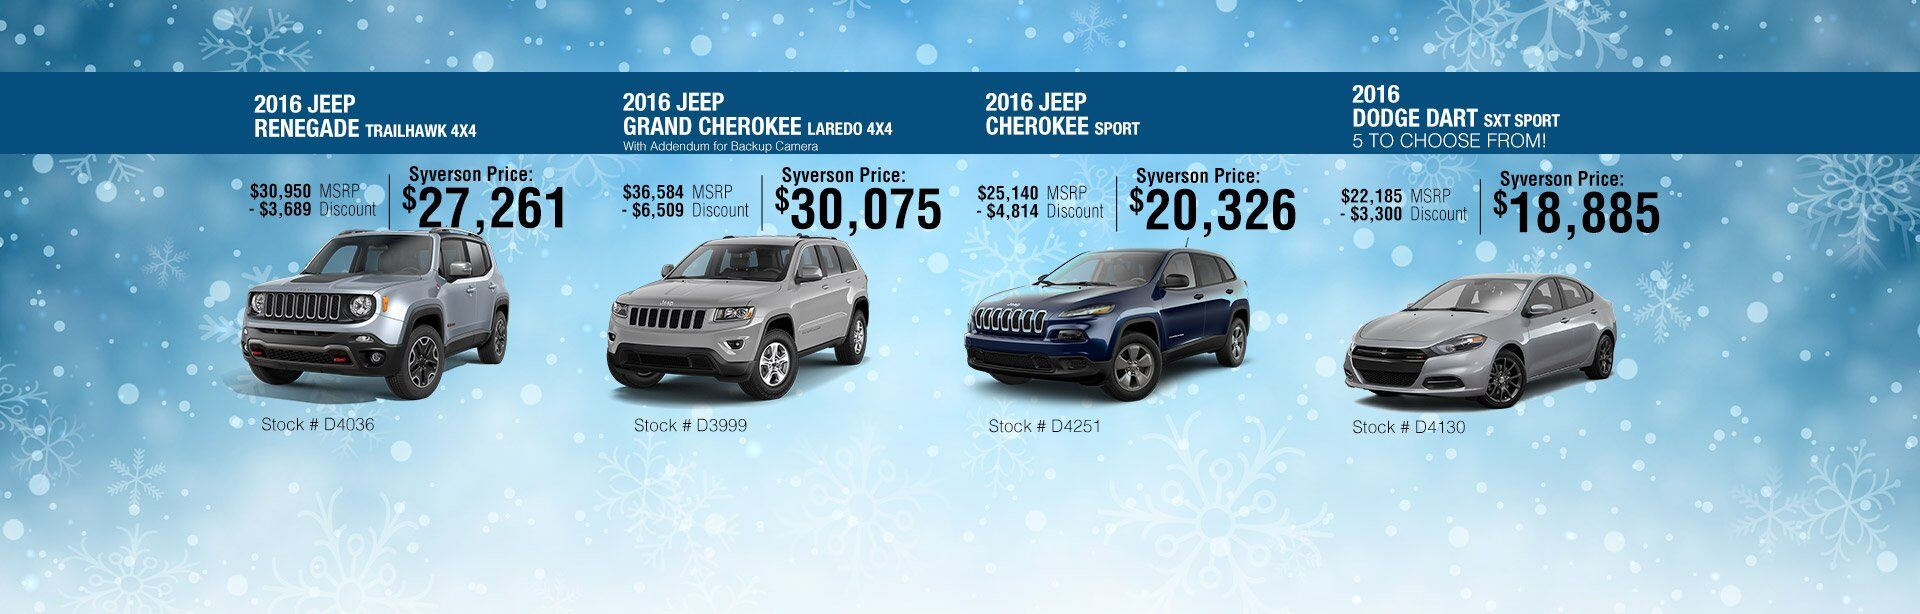 Jeep Dodge Ram Lease Offers